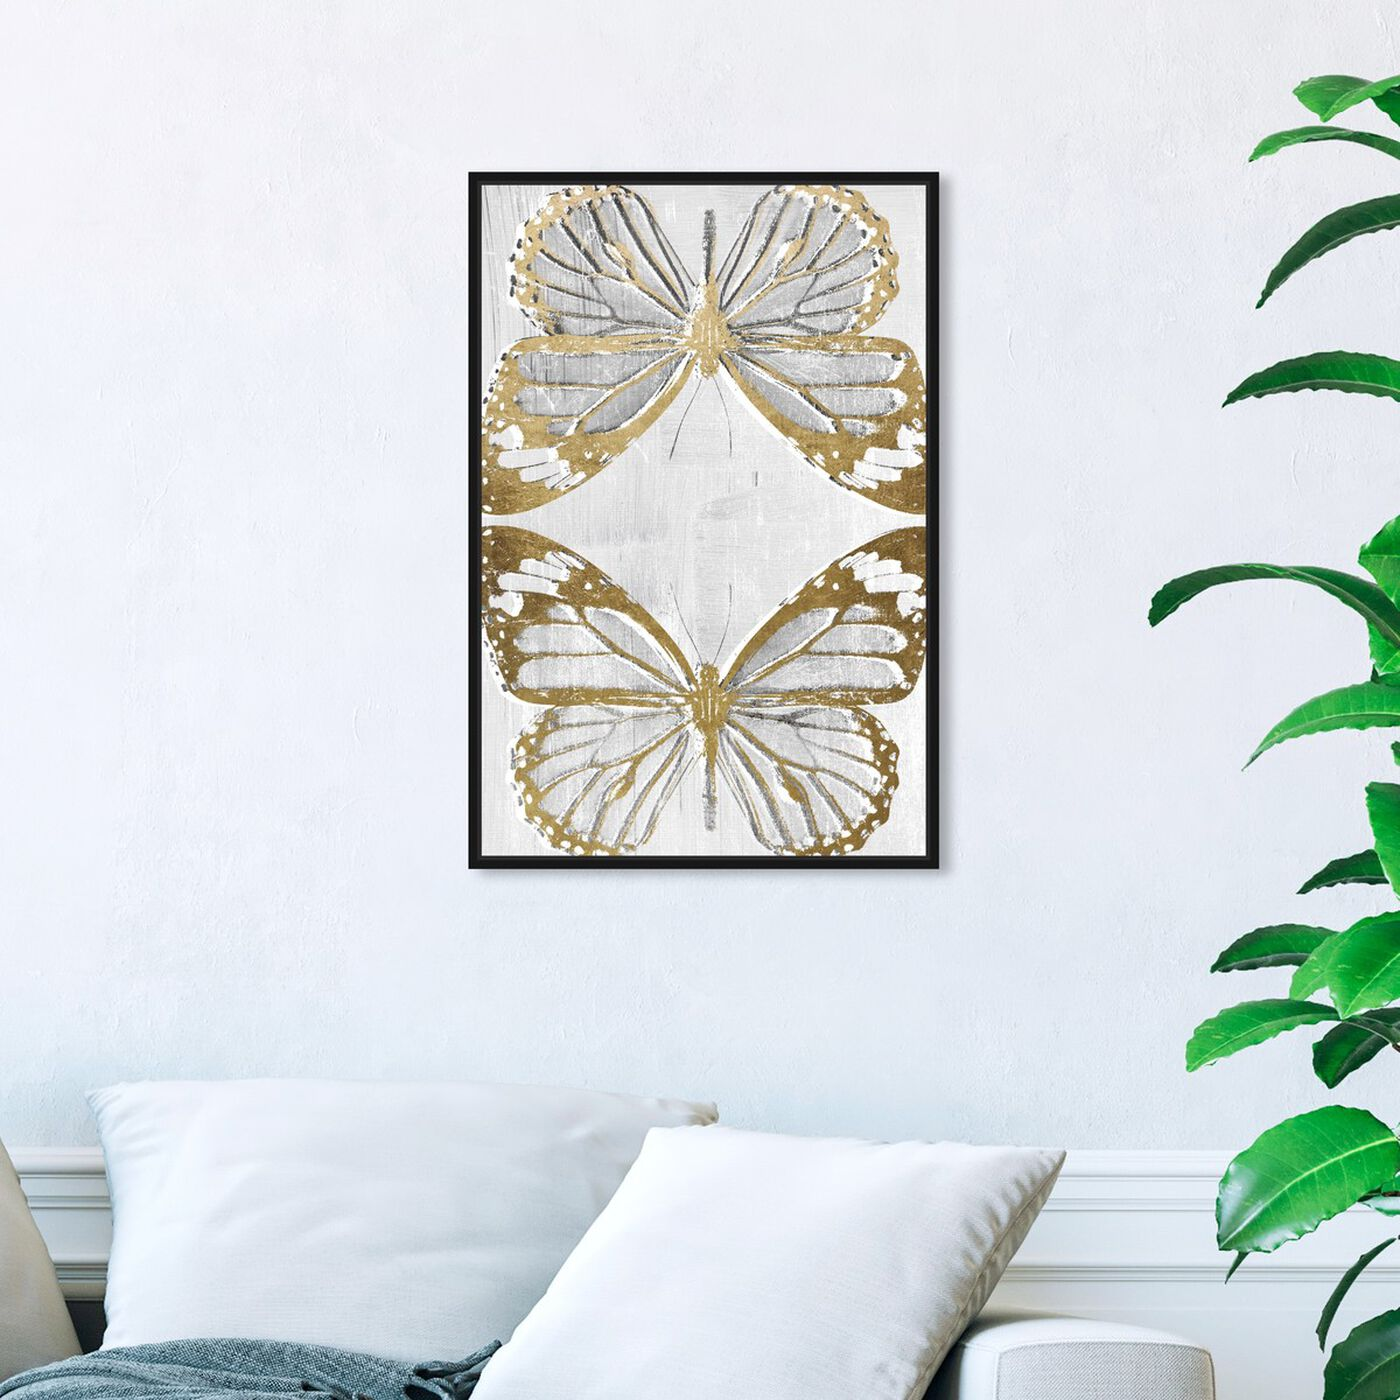 Hanging view of Golden Butterflies featuring animals and insects art.